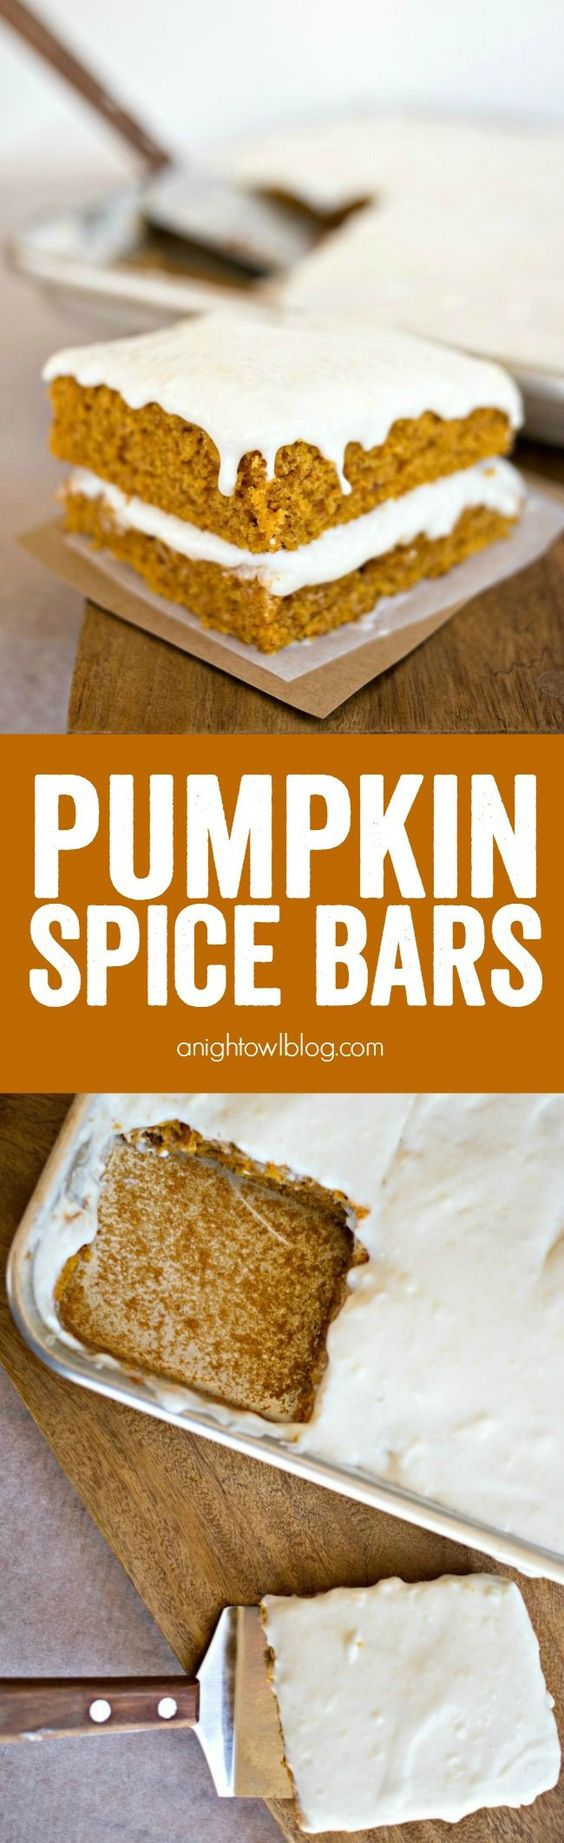 These Pumpkin Spice Bars with cream cheese frosting are moist ...